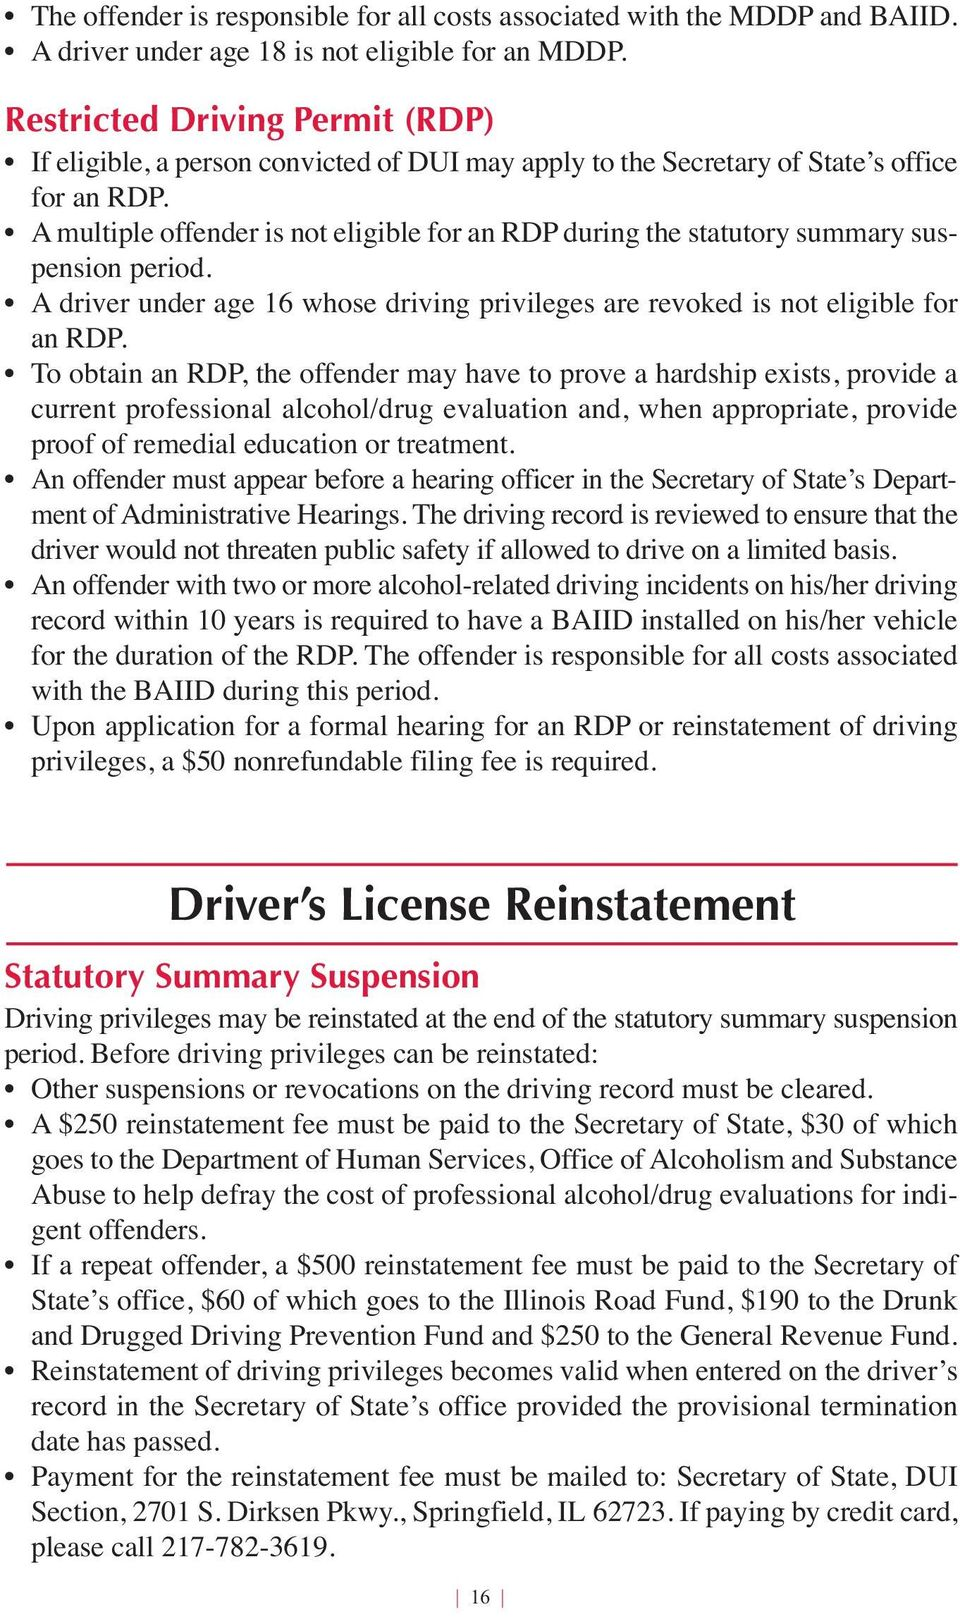 A multiple offender is not eligible for an RDP during the statutory summary suspension period. A driver under age 6 whose driving privileges are revoked is not eligible for an RDP.